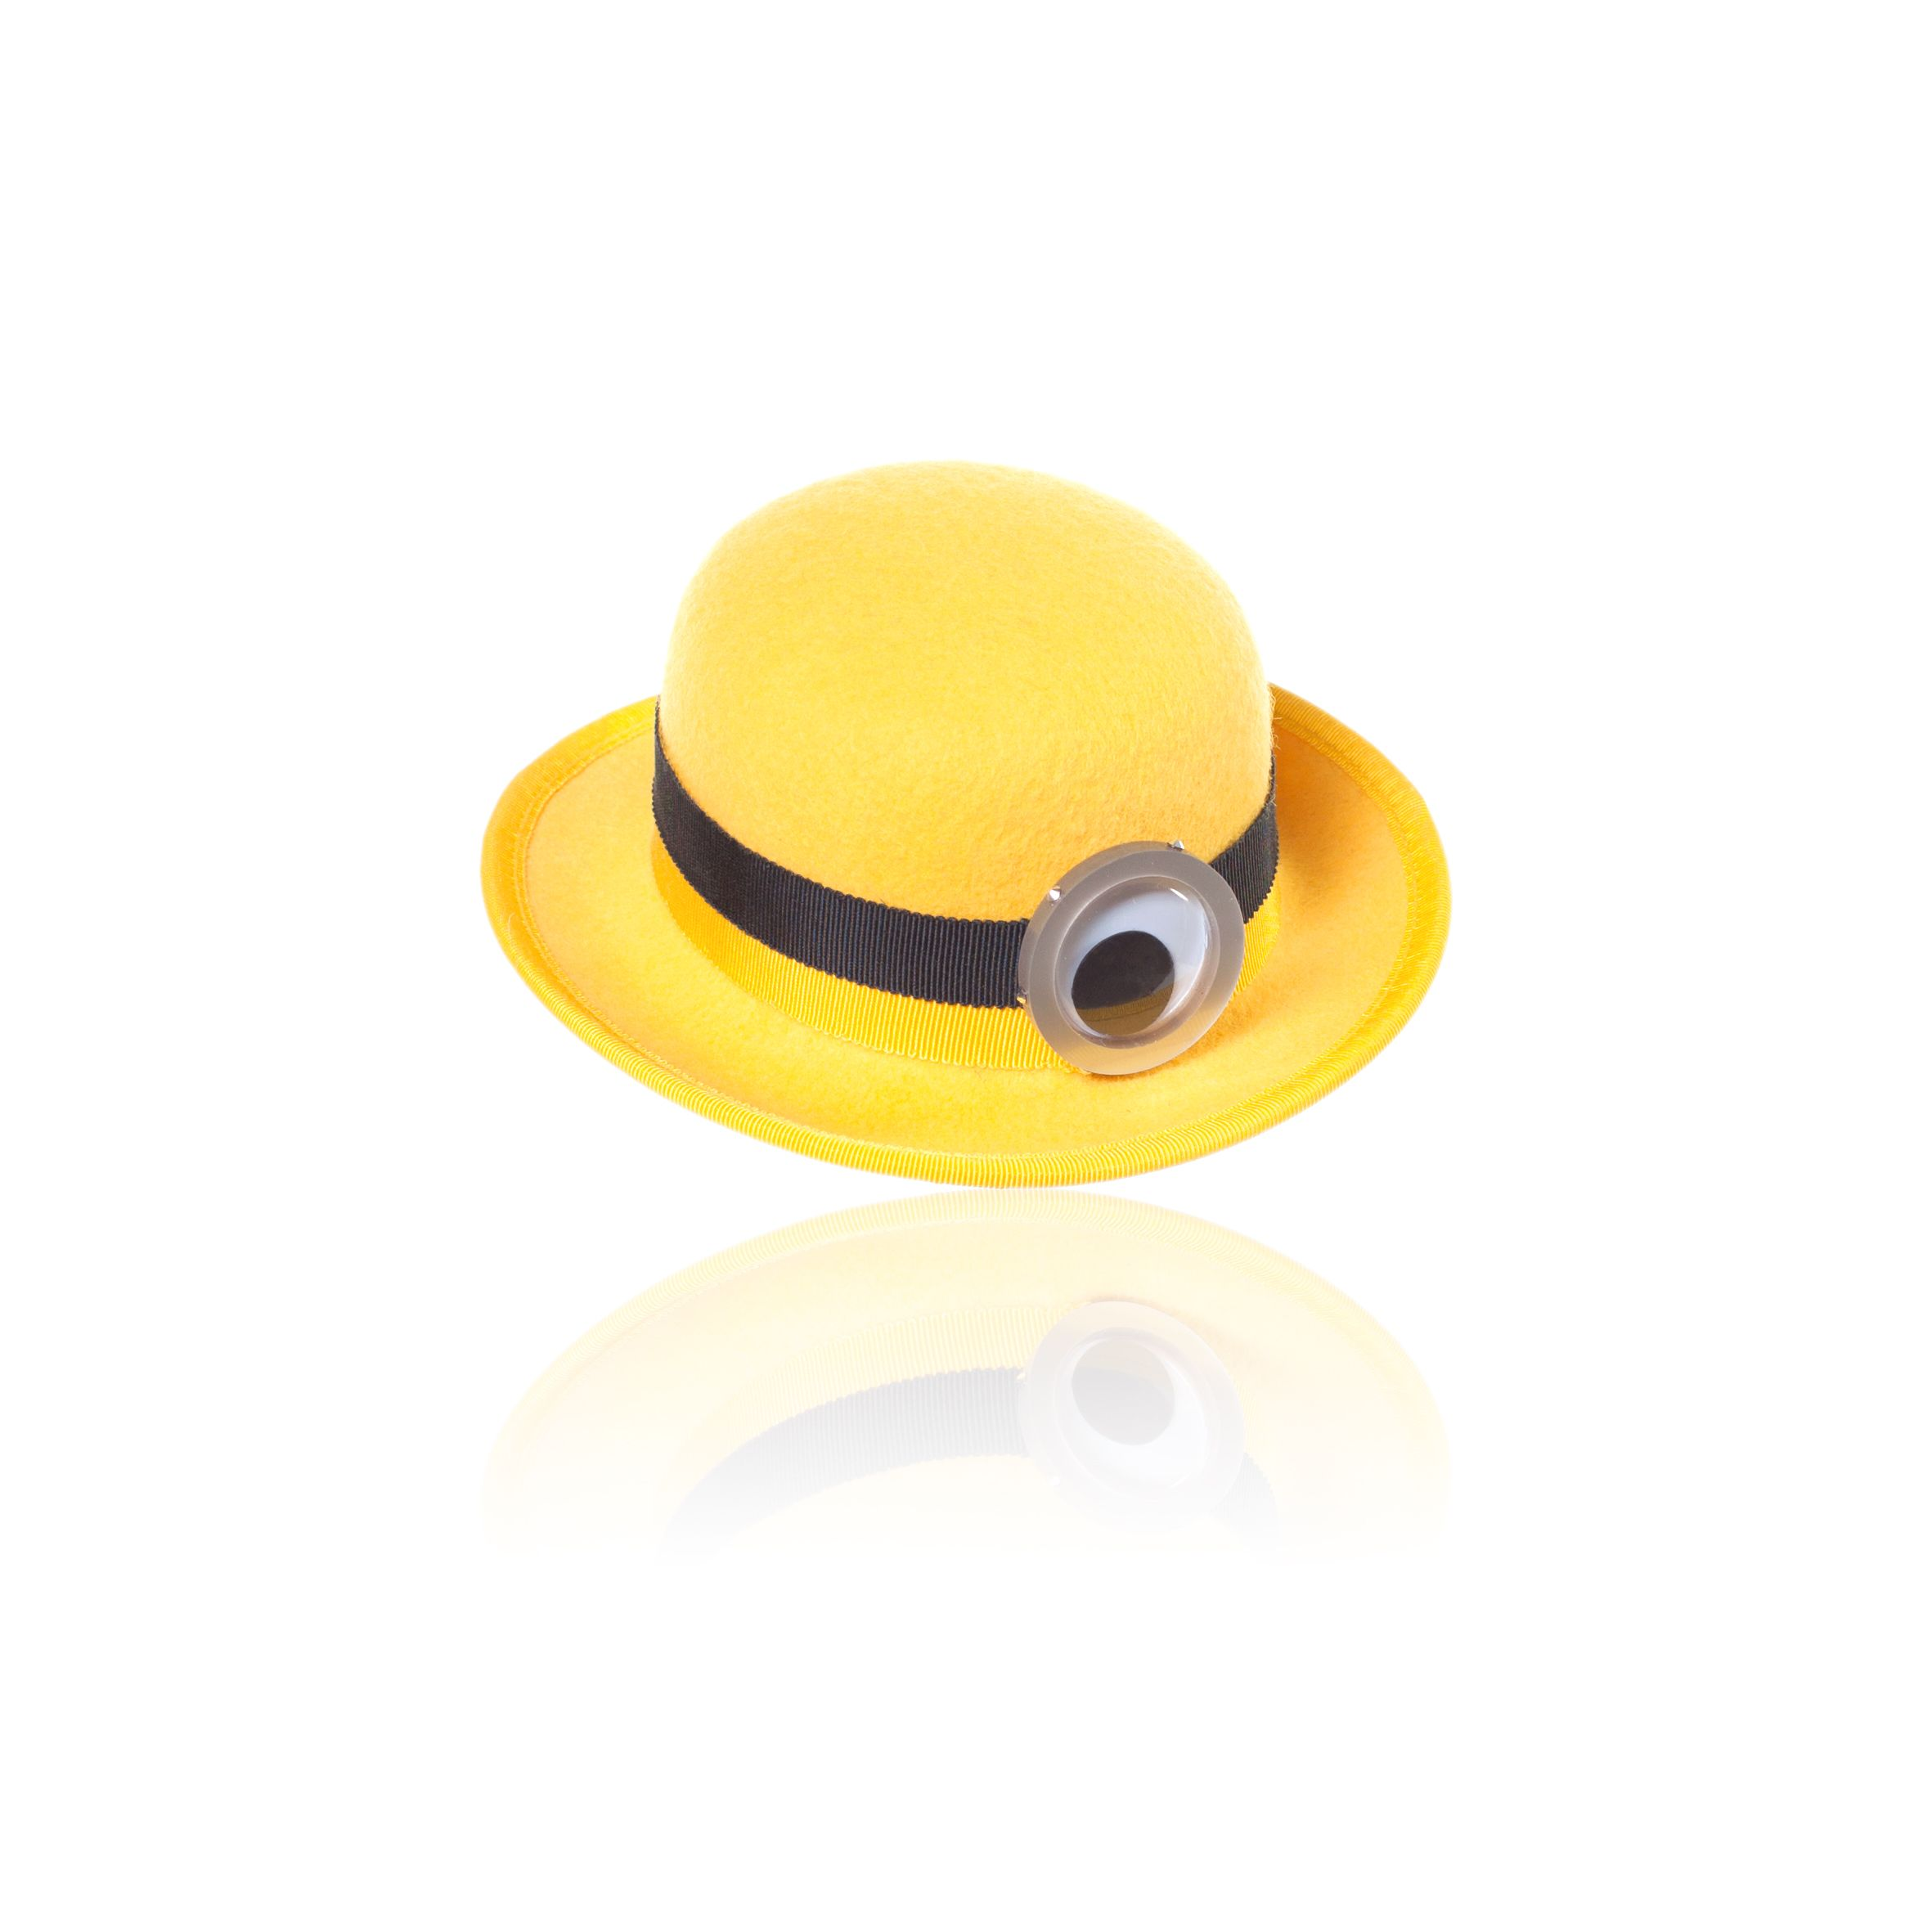 Brighten your day with this Minions yellow hat by Piers Atkinson. | Minions Bello Yellow Collection | See Minions in theaters July 10th.